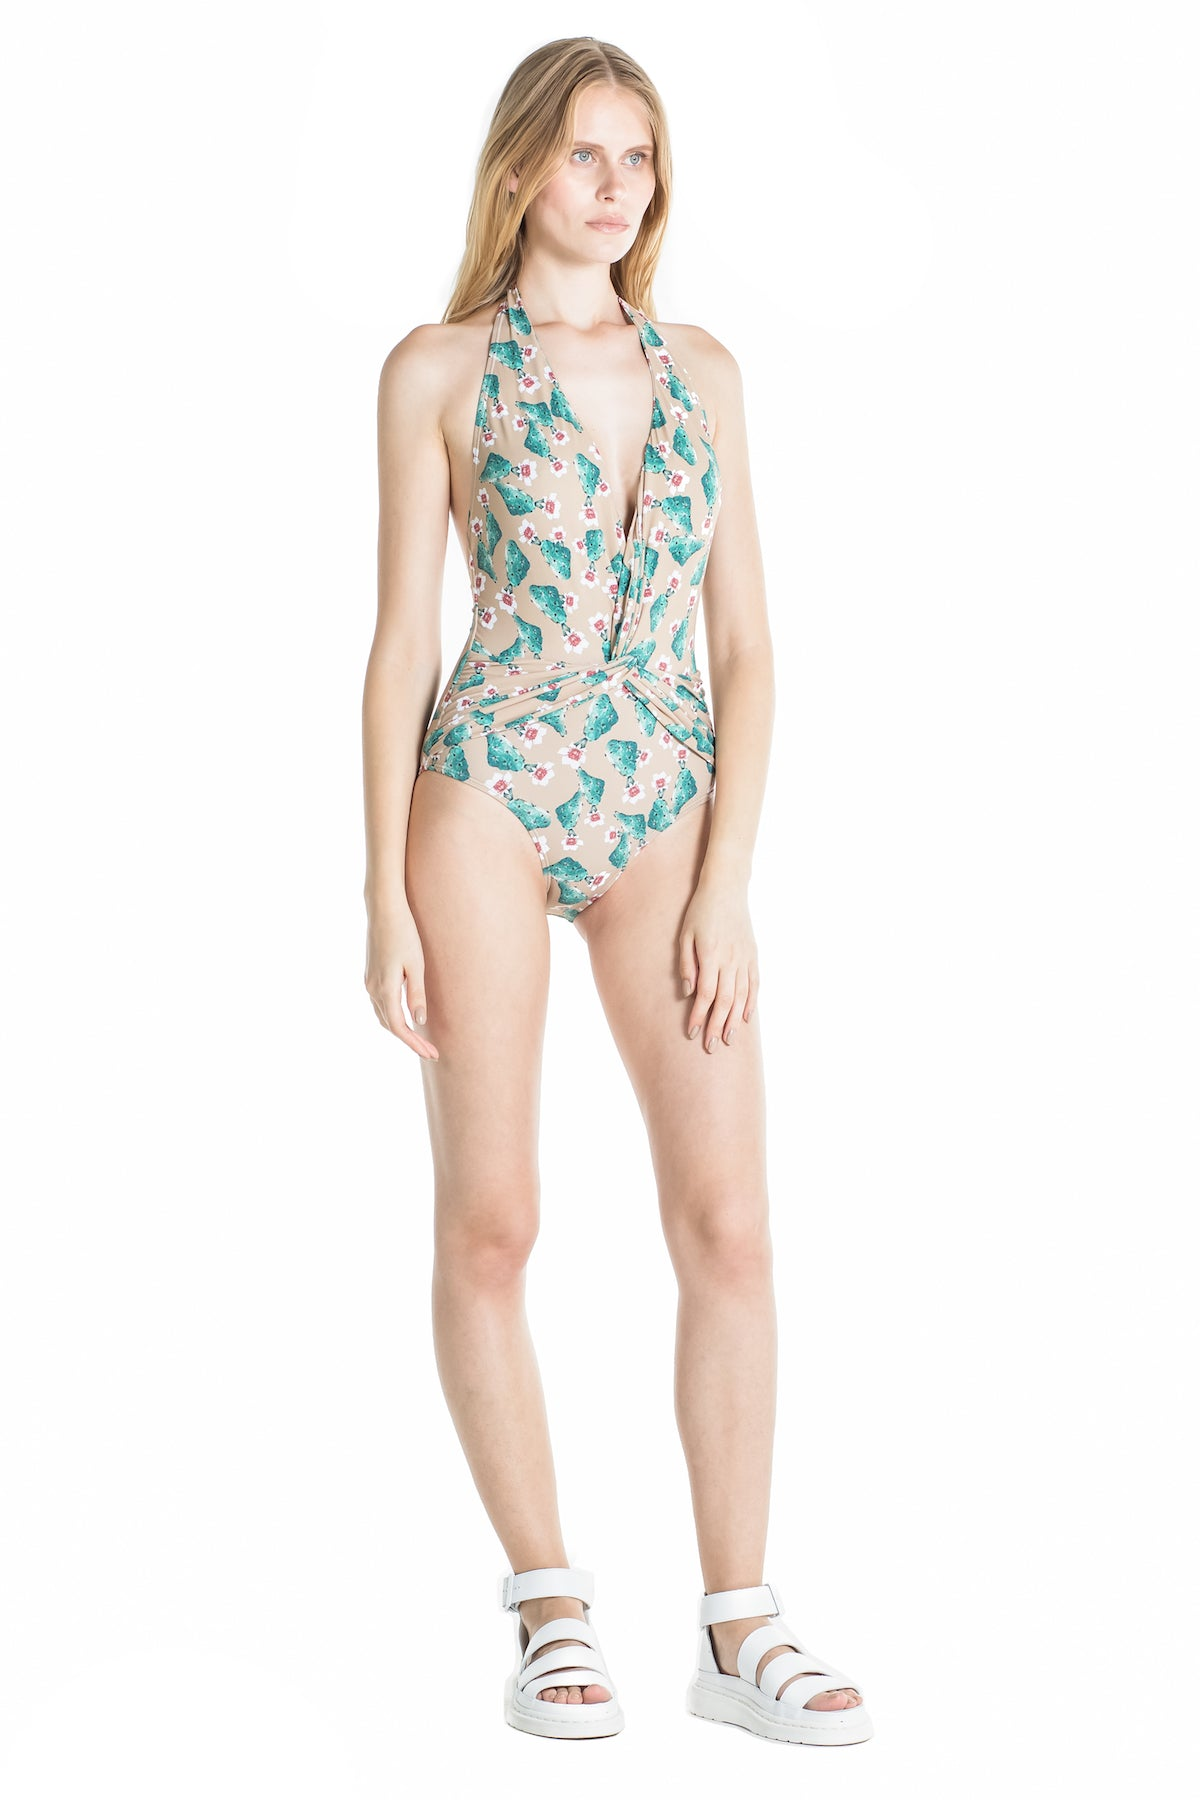 Side of Marina halter top swimsuit in Cactus.